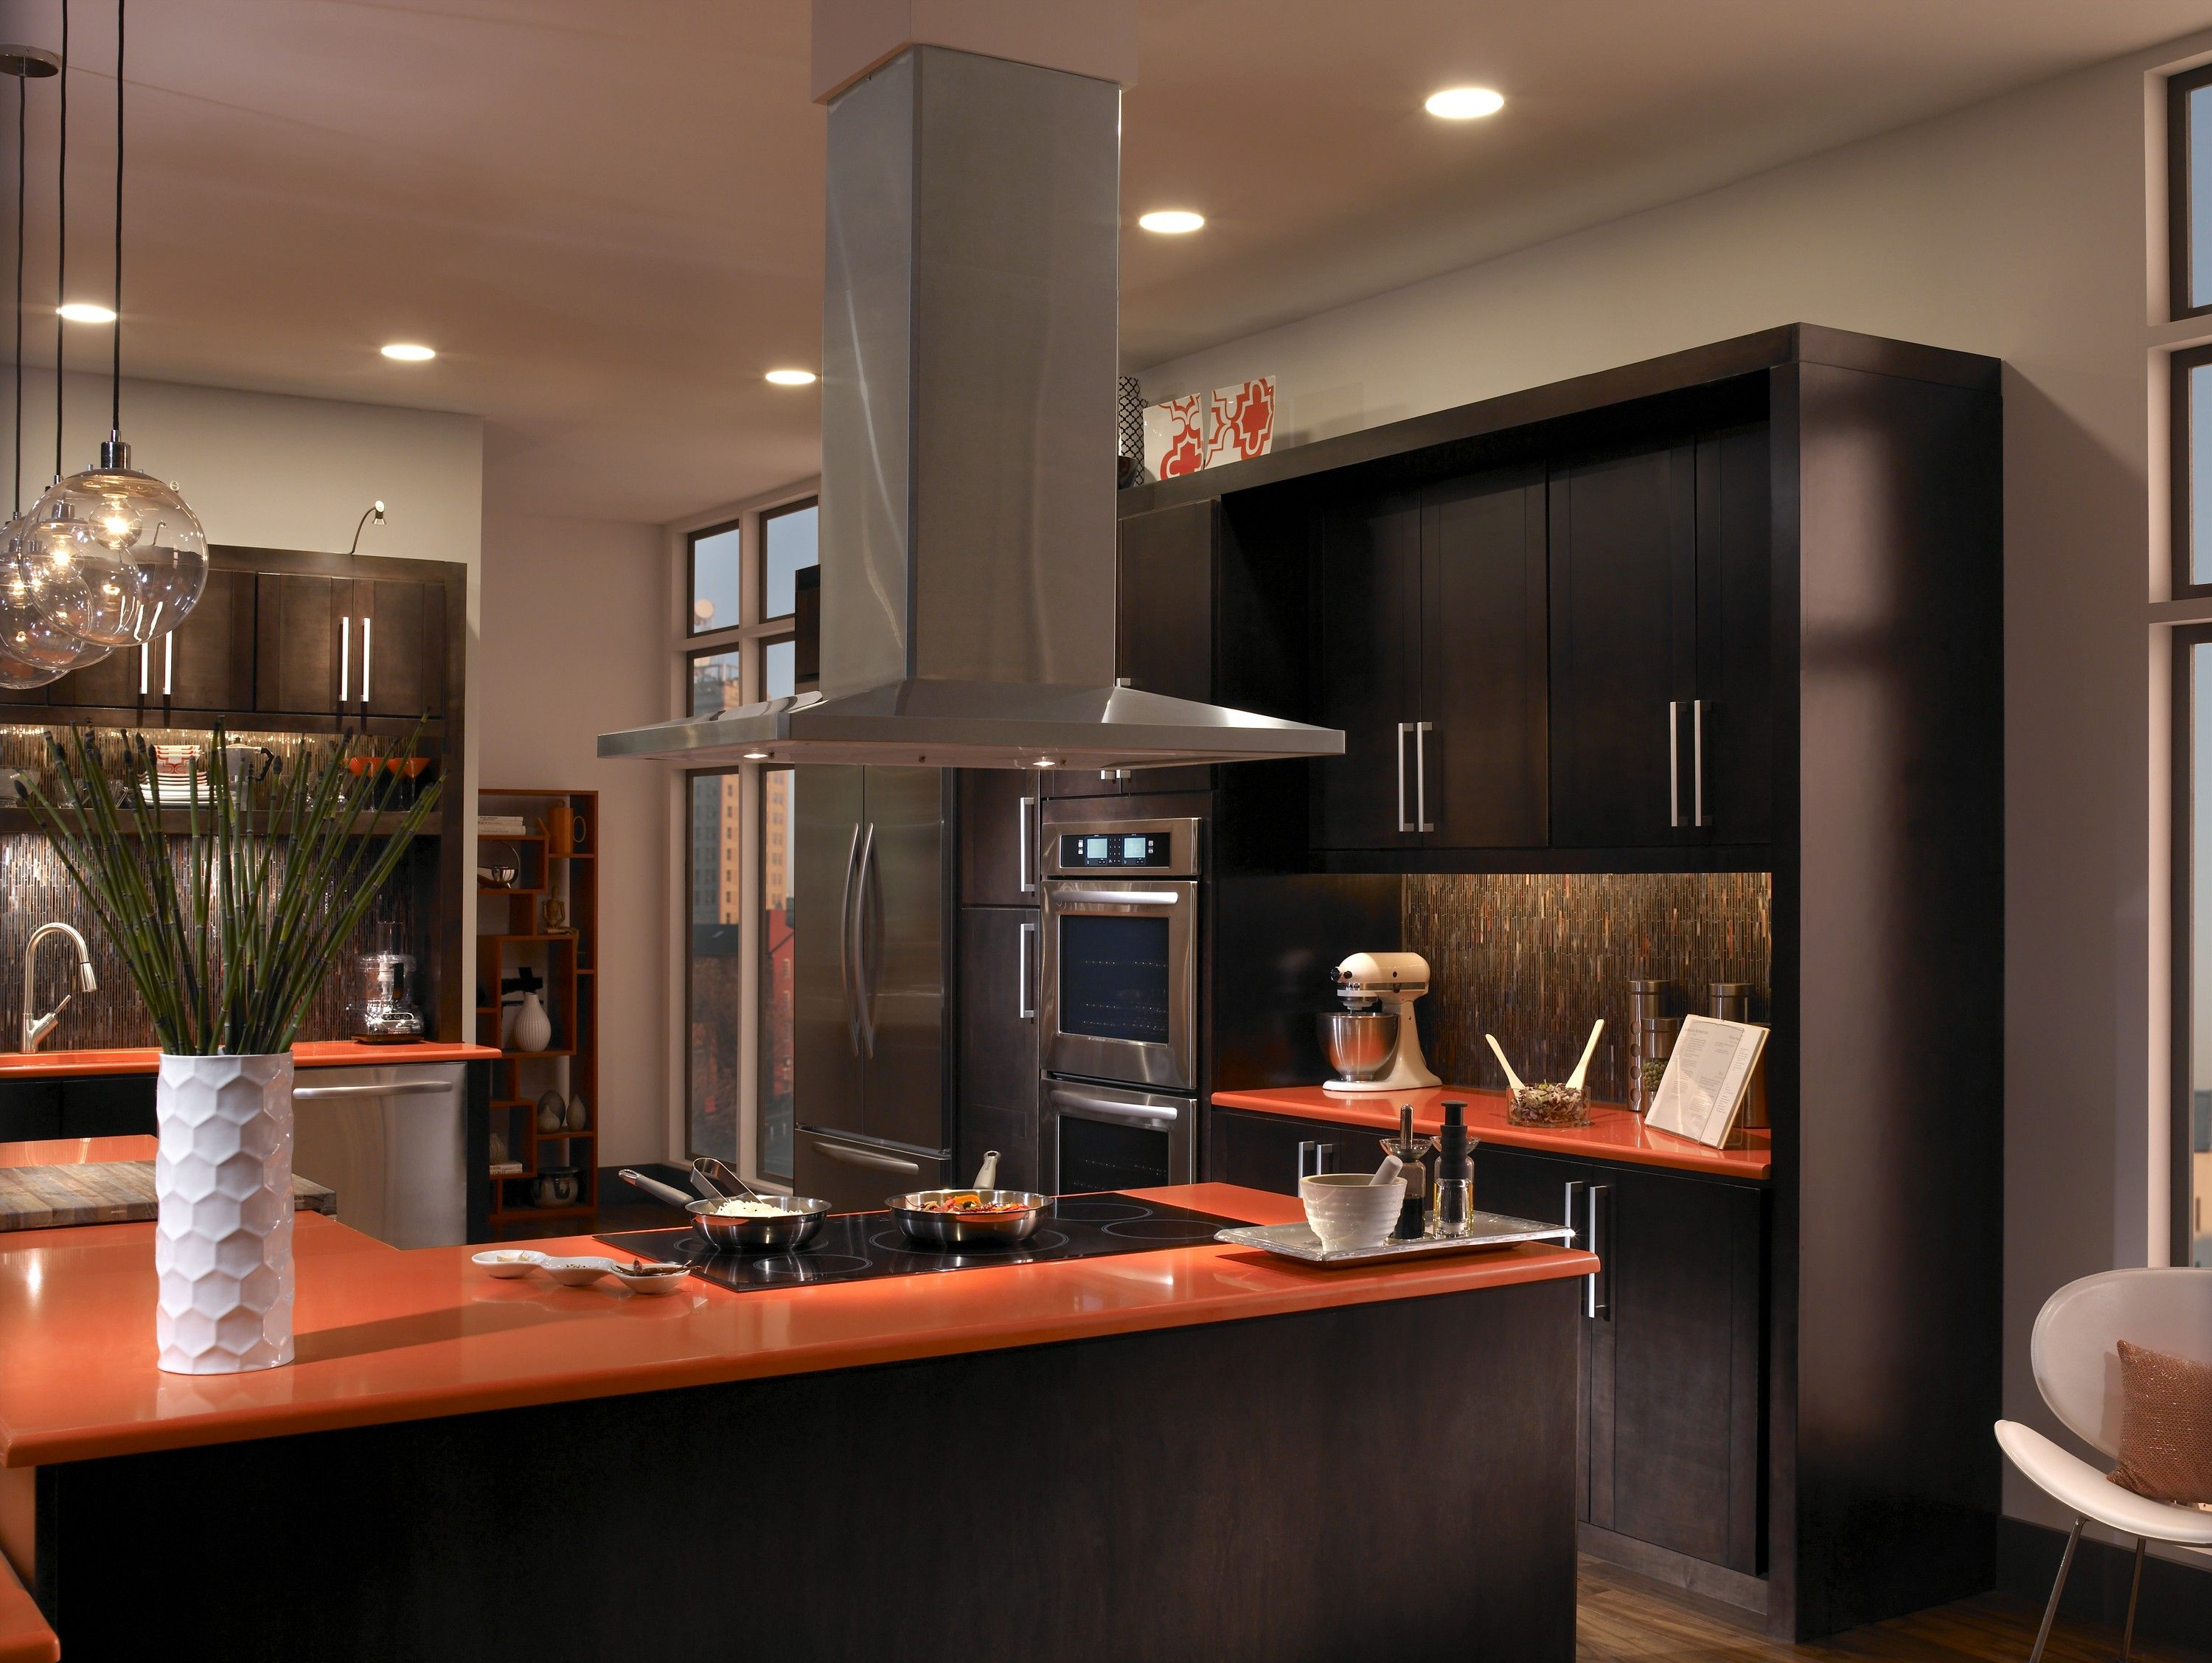 40 Kitchen Vent Range Hood Designs And Ideas Removeandreplacecom ...